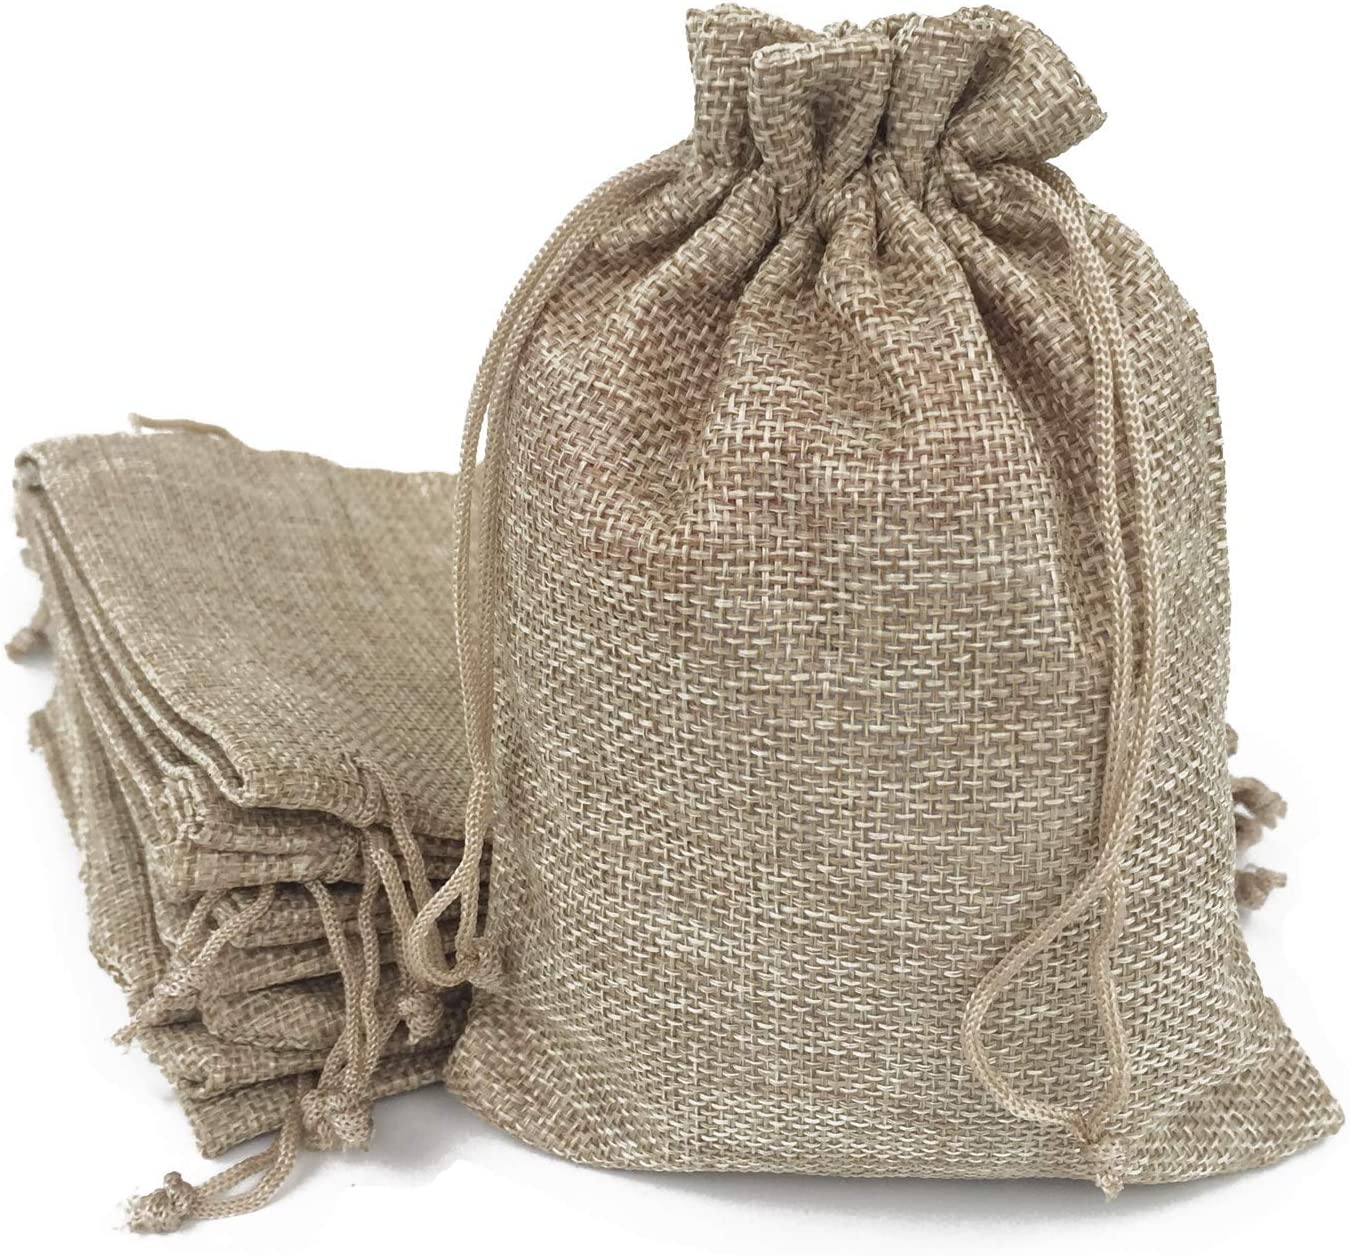 50PCS Burlap Bags with Drawstring Gift Jute bags Included Cotton Lining ( 6.7 X 9 Inch , #01 Natural)